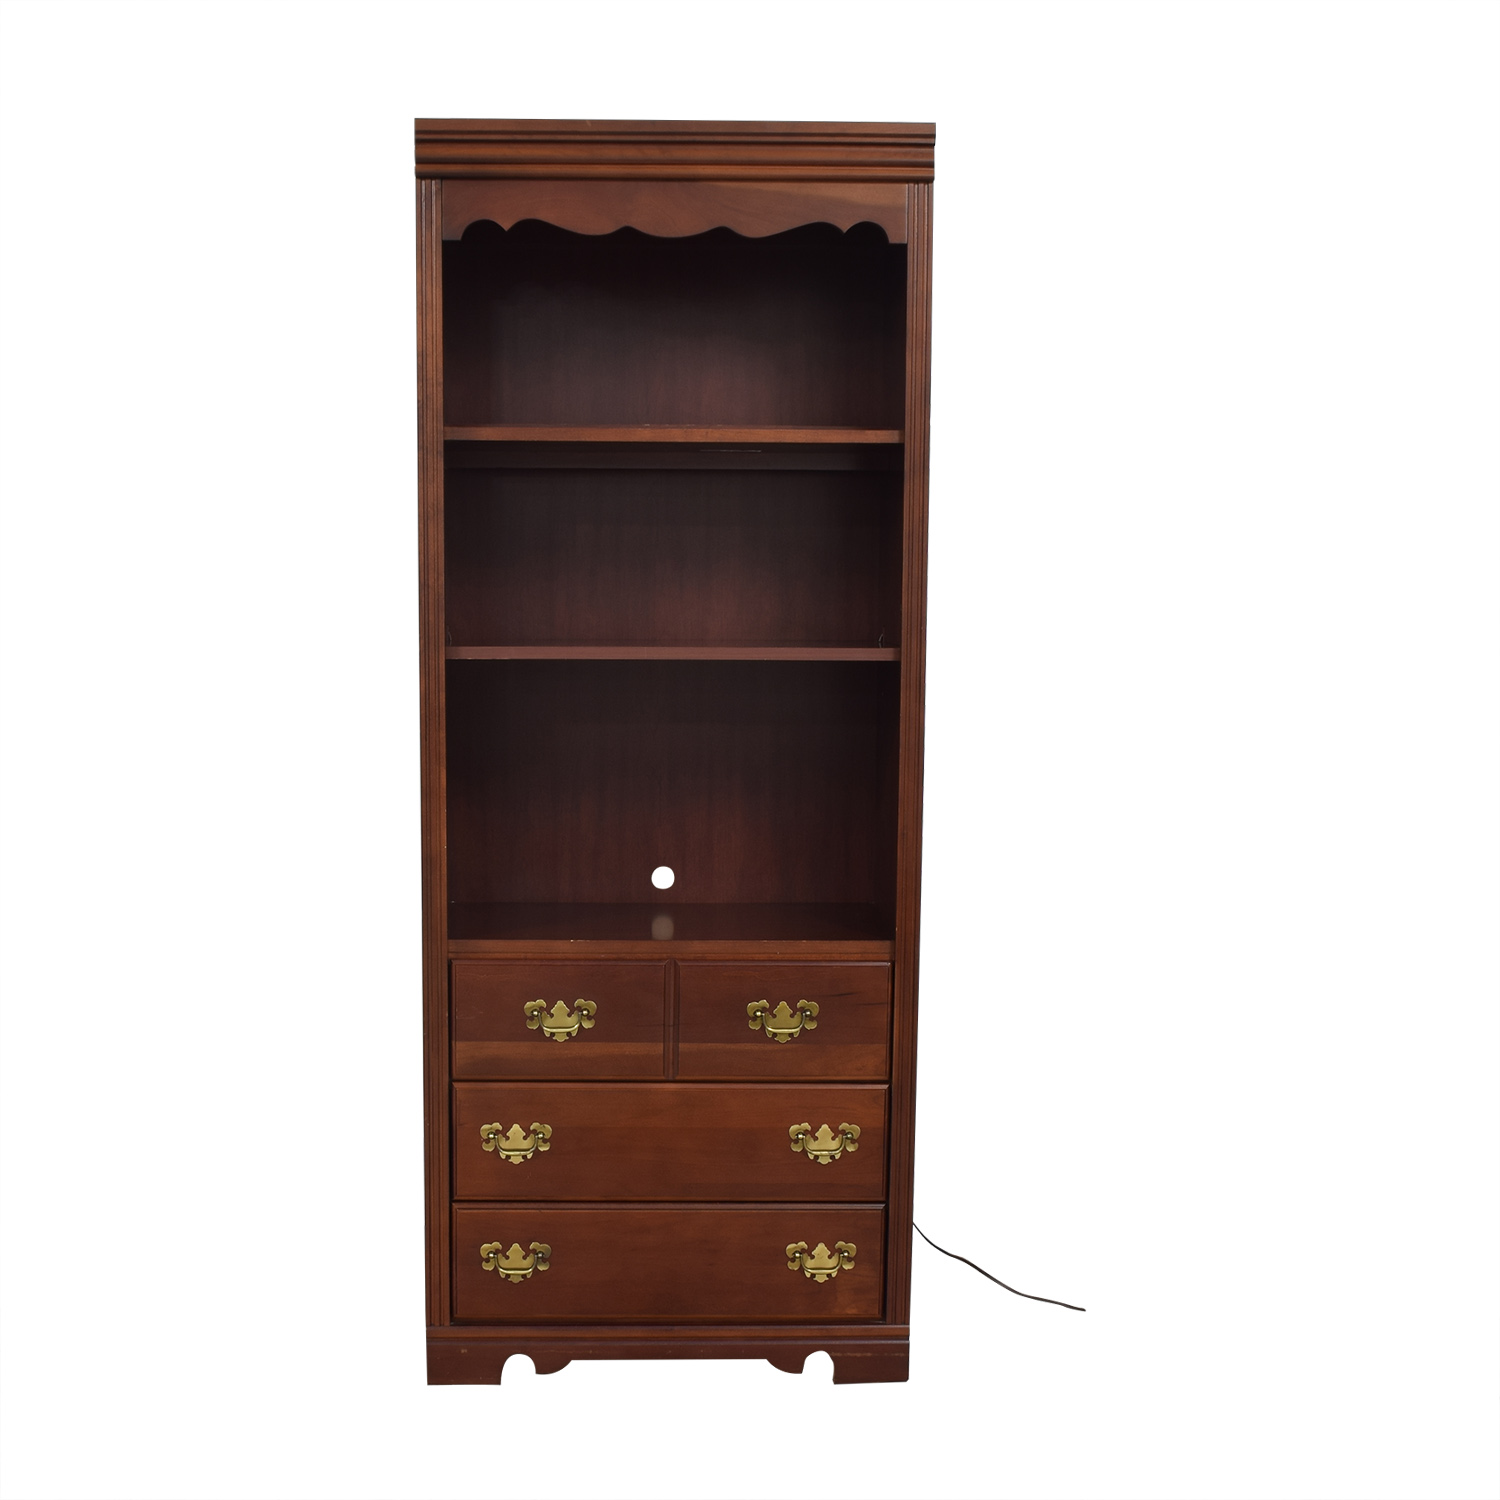 Broyhill Furniture Broyhill Book Case with Light nyc